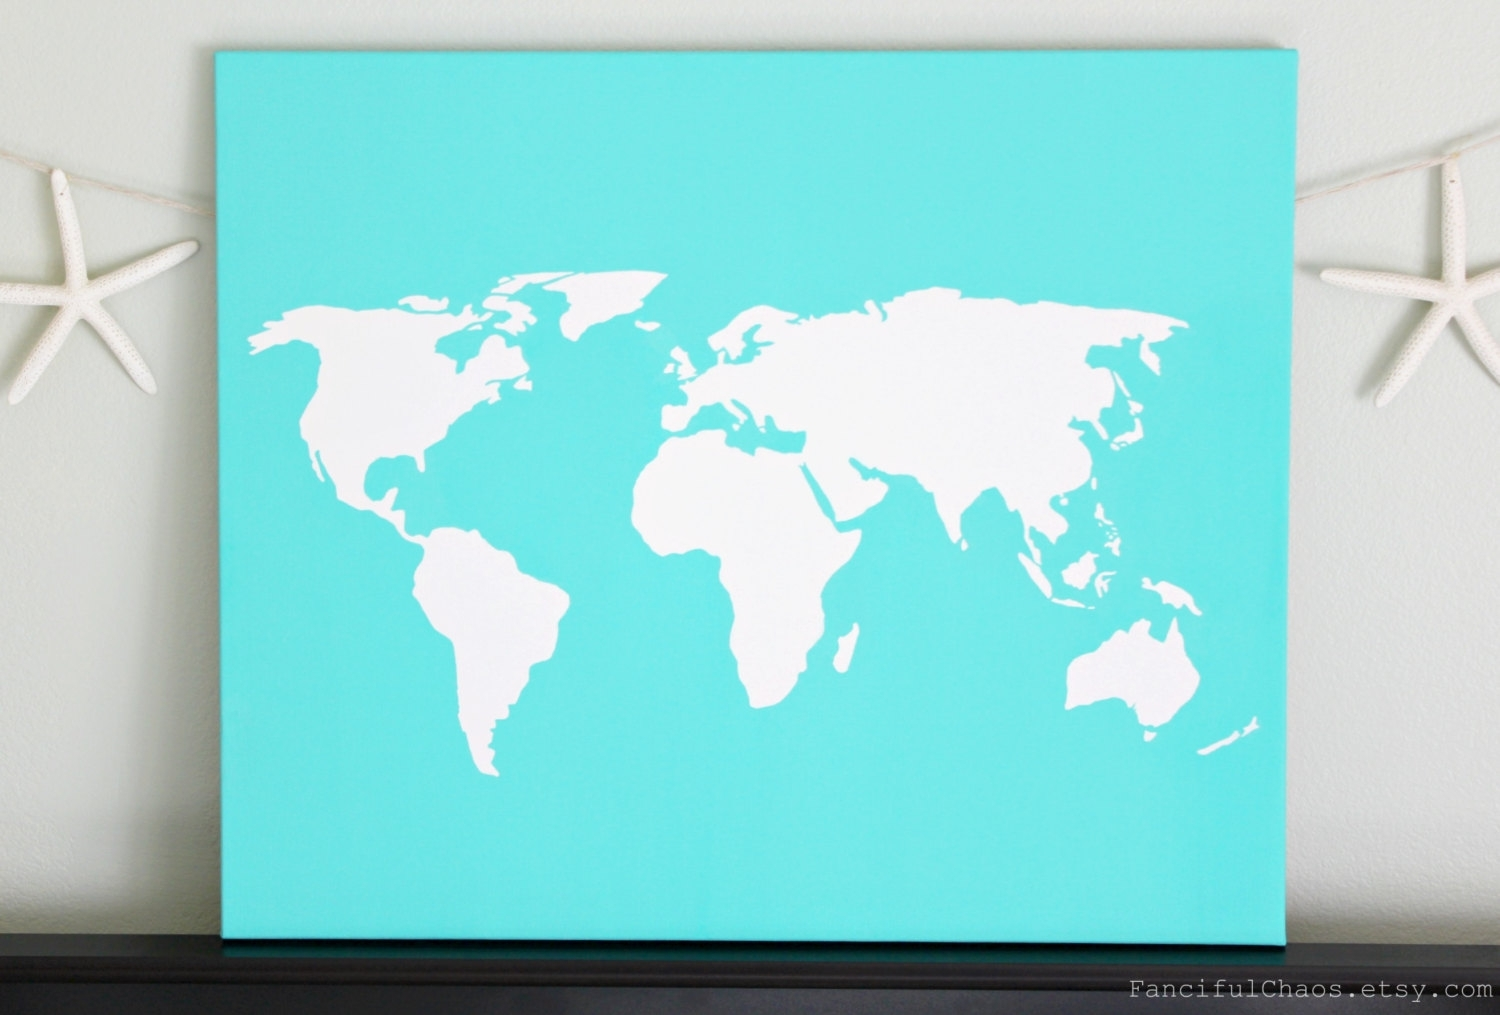 Il Fullxfull 540289865 6G0P Jpg Version 0 For Diy World Map Wall With Most Recent Diy World Map Wall Art (Gallery 8 of 20)